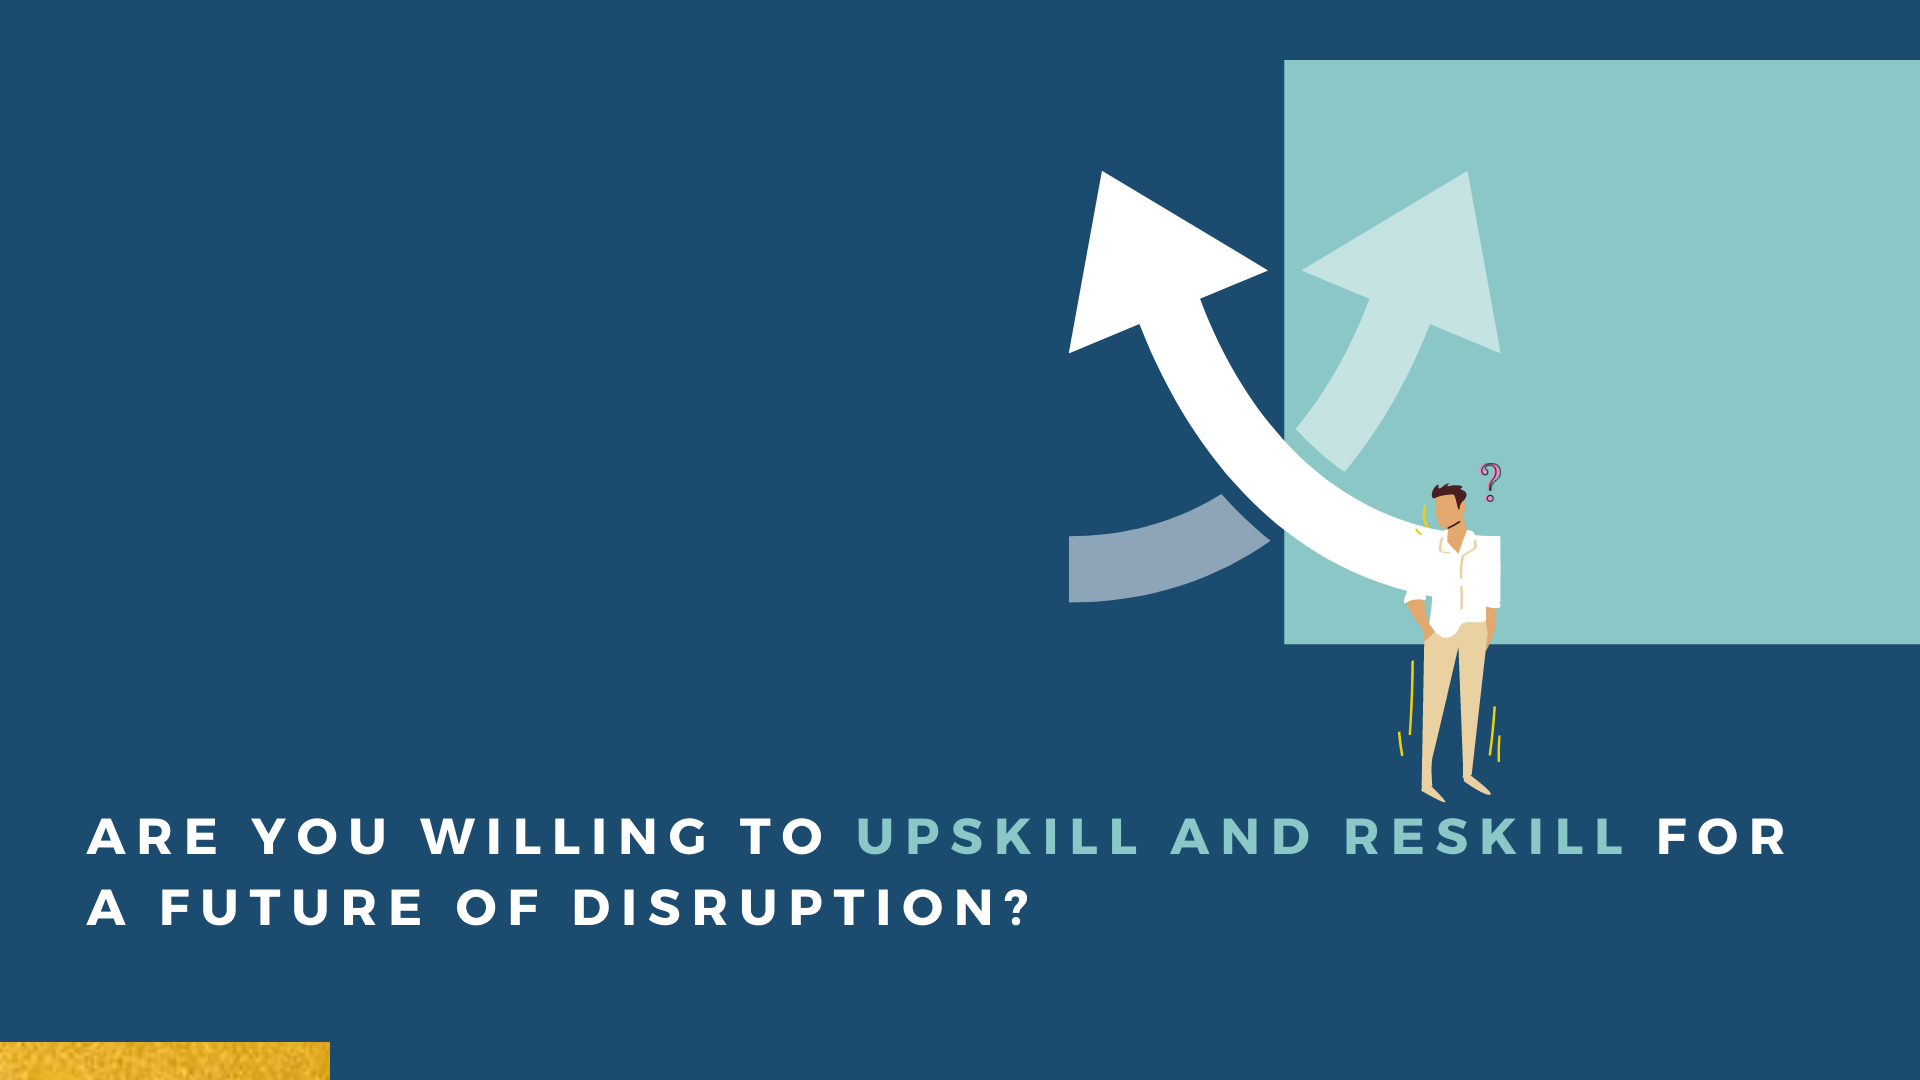 Are you willing to upskill and reskill for a future of disruption?